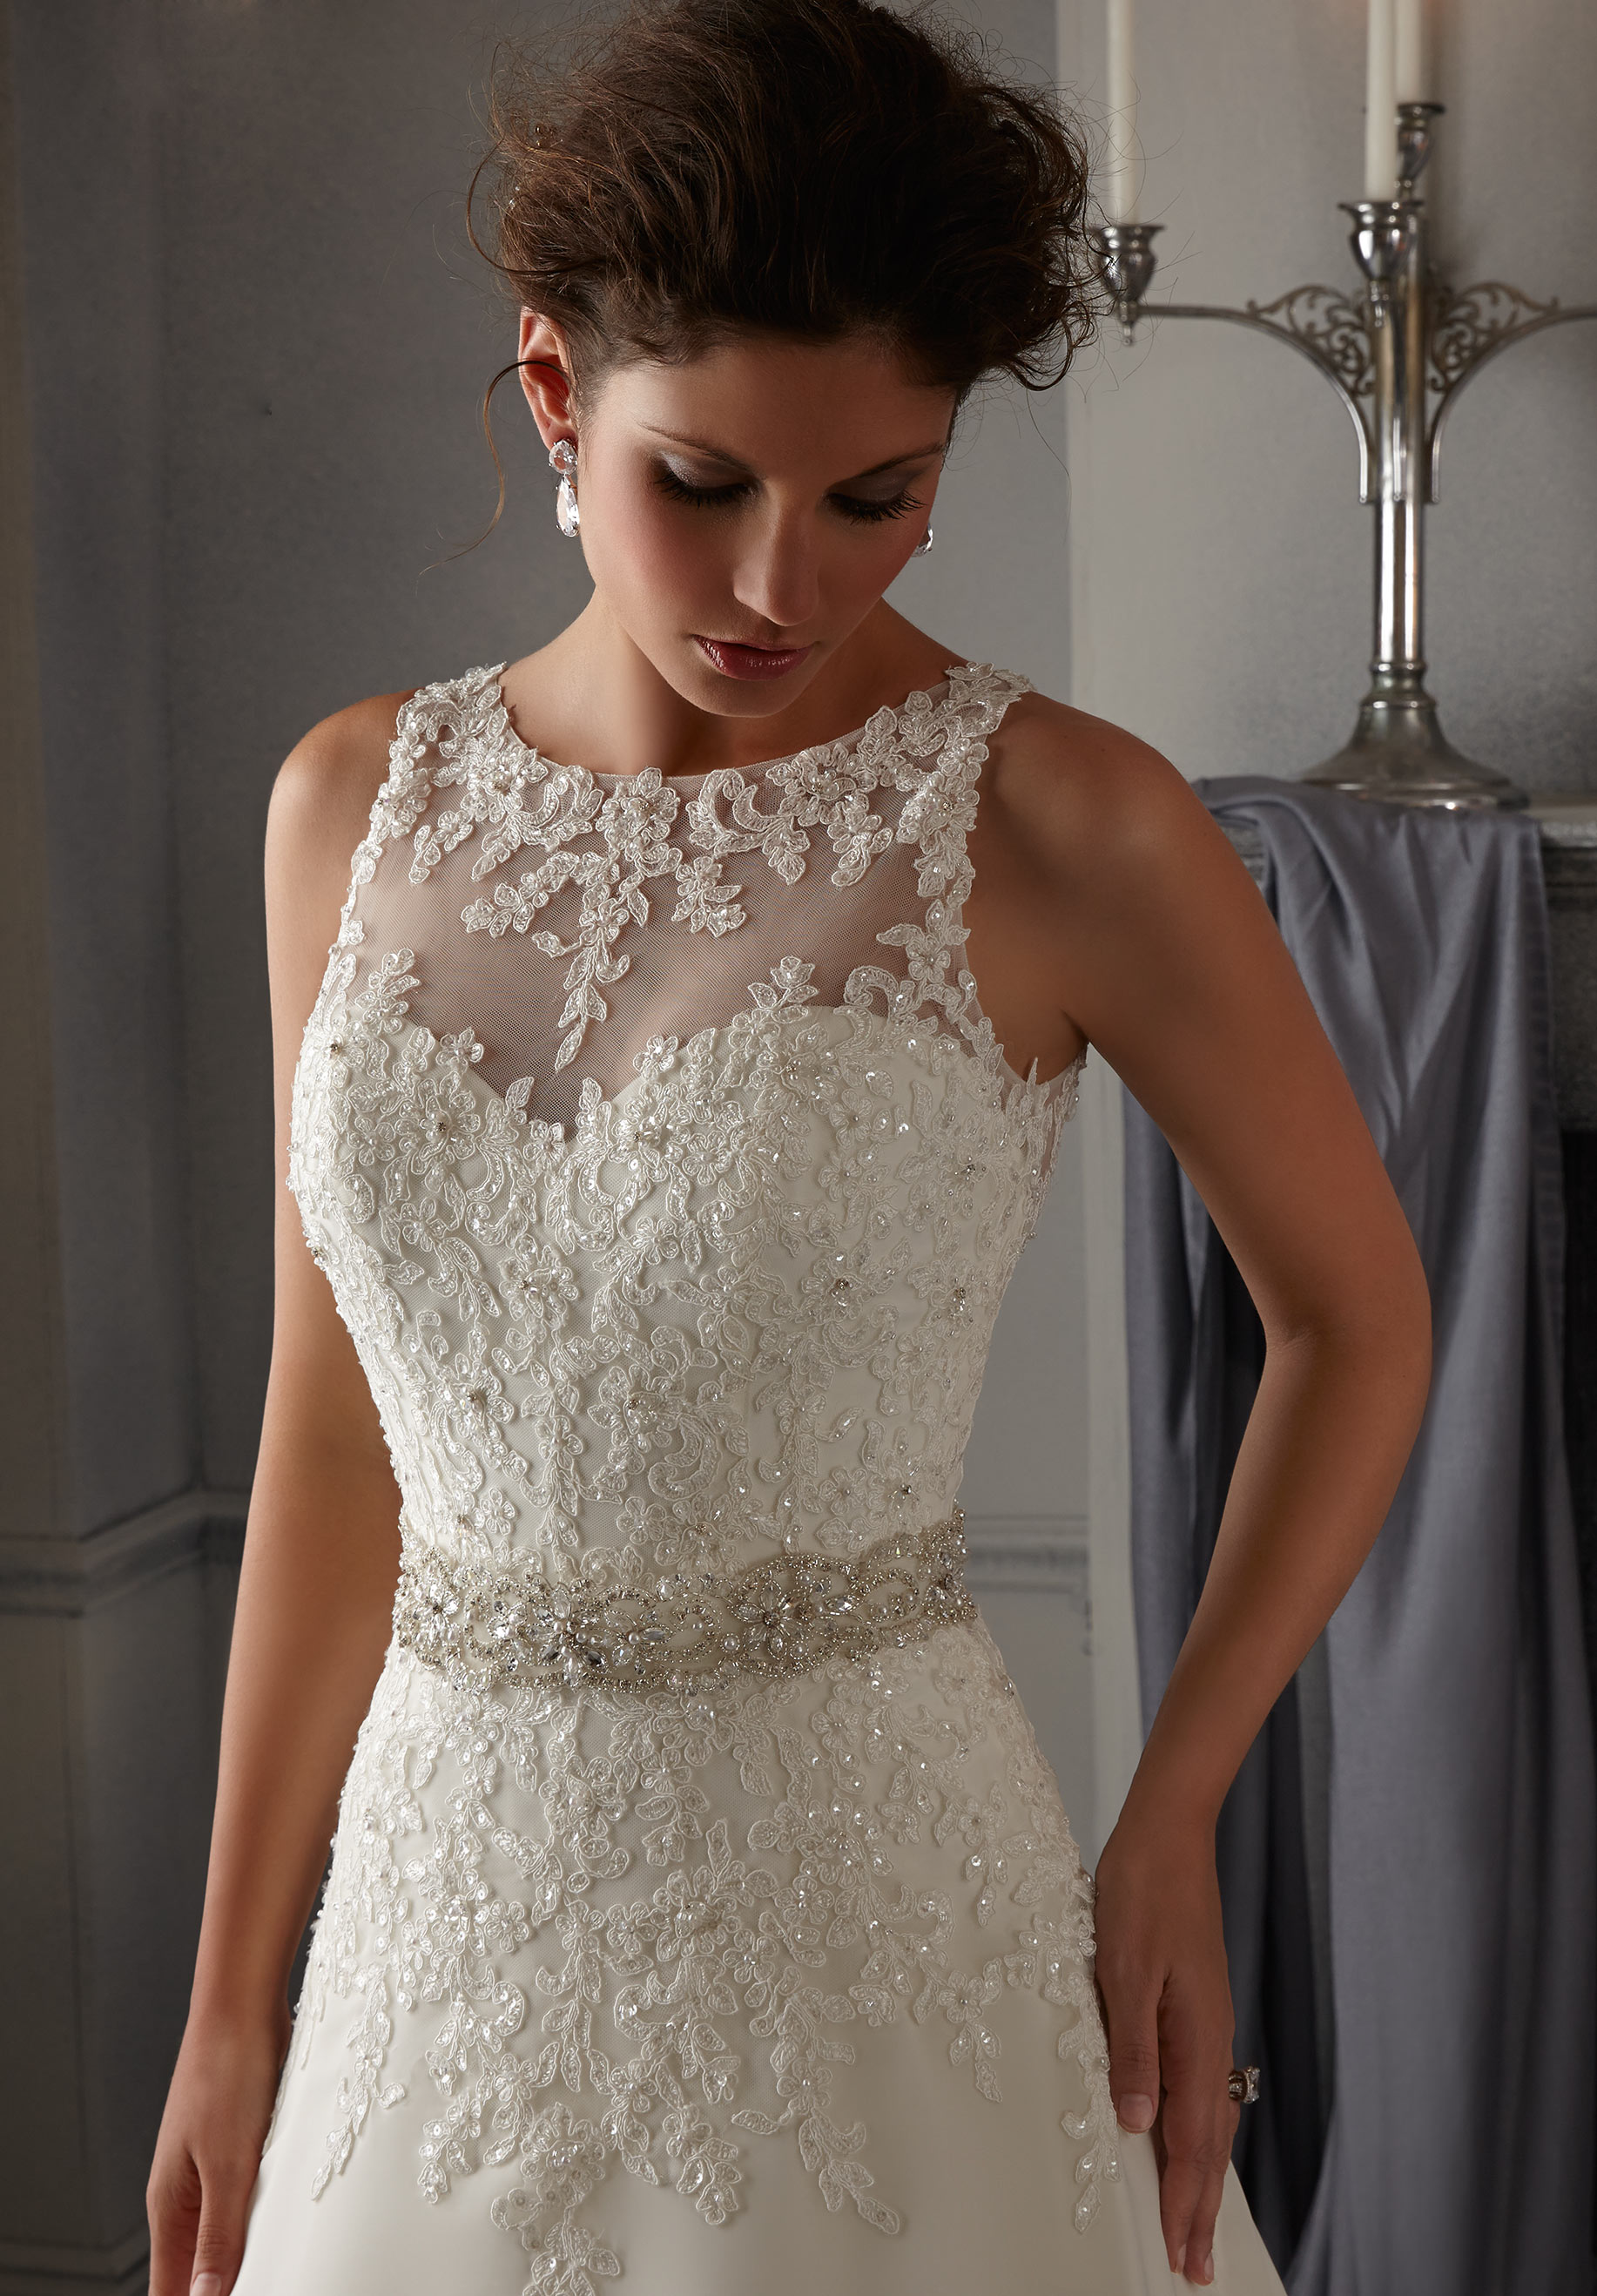 wedding gowns with sashes belts for wedding dresses Mori Lee Wedding Dress Sashmadamebridal